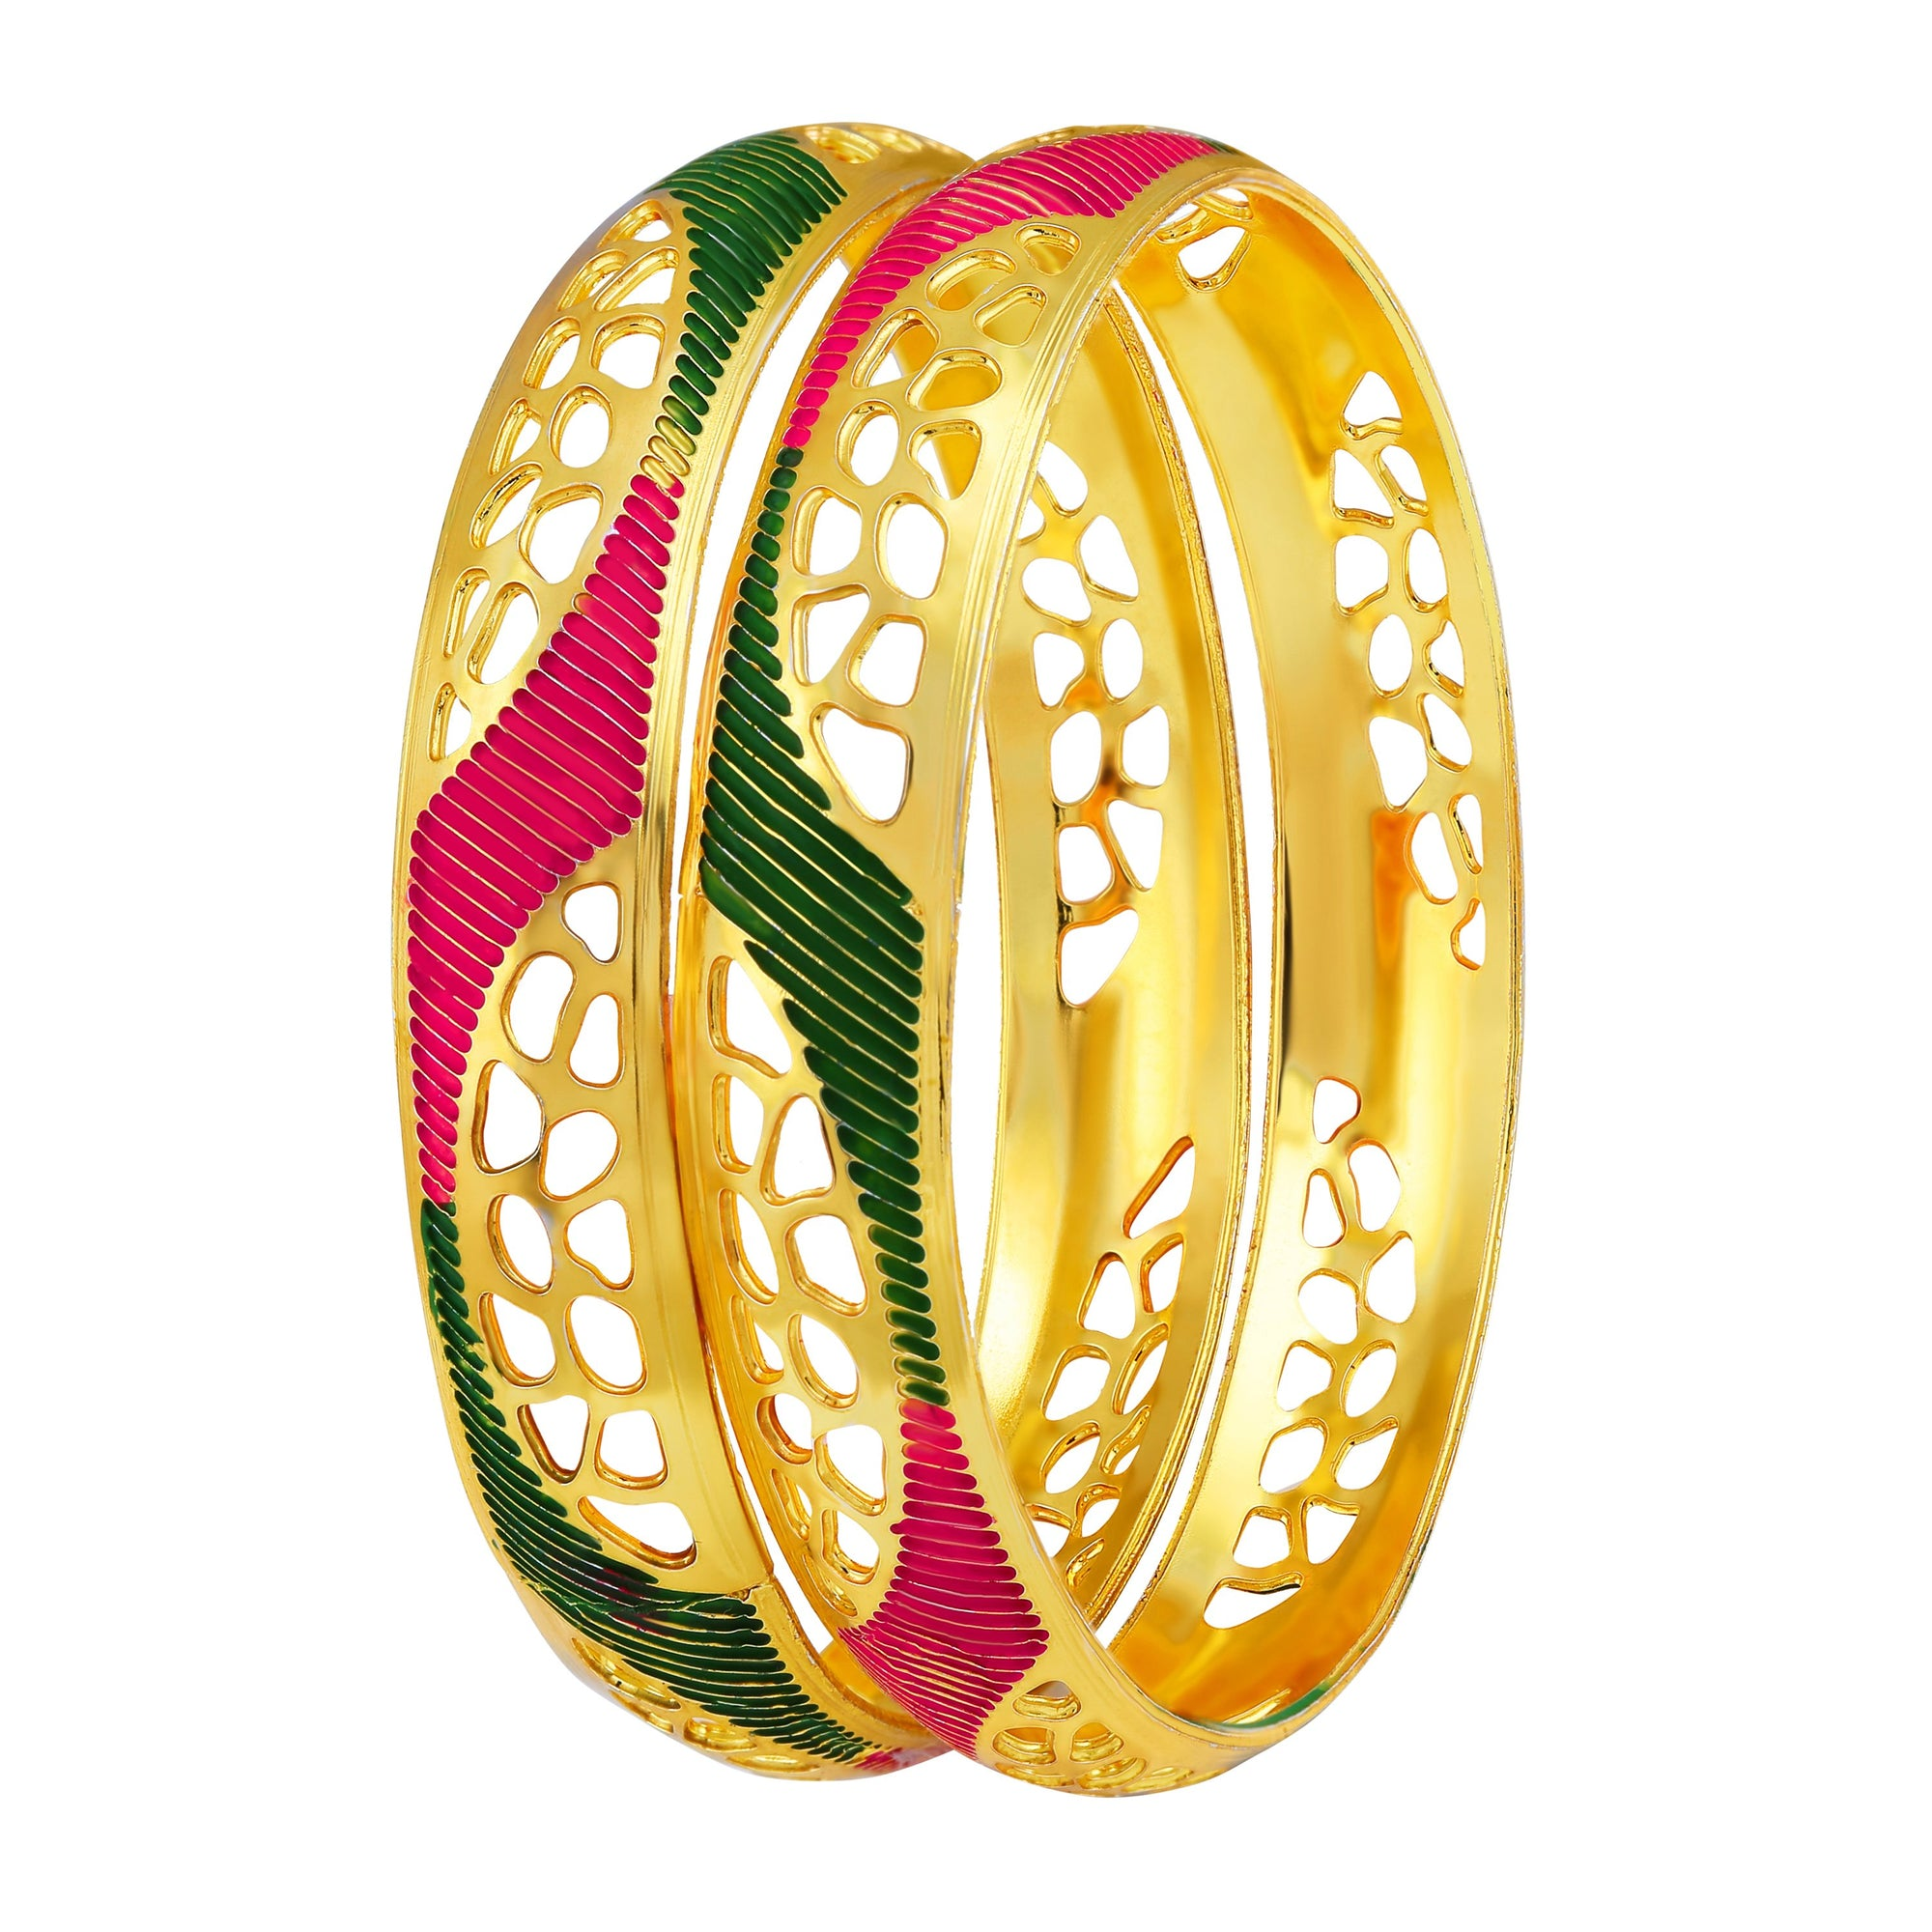 Asmitta Jewellery Gold Enamel Bangle  -BG167